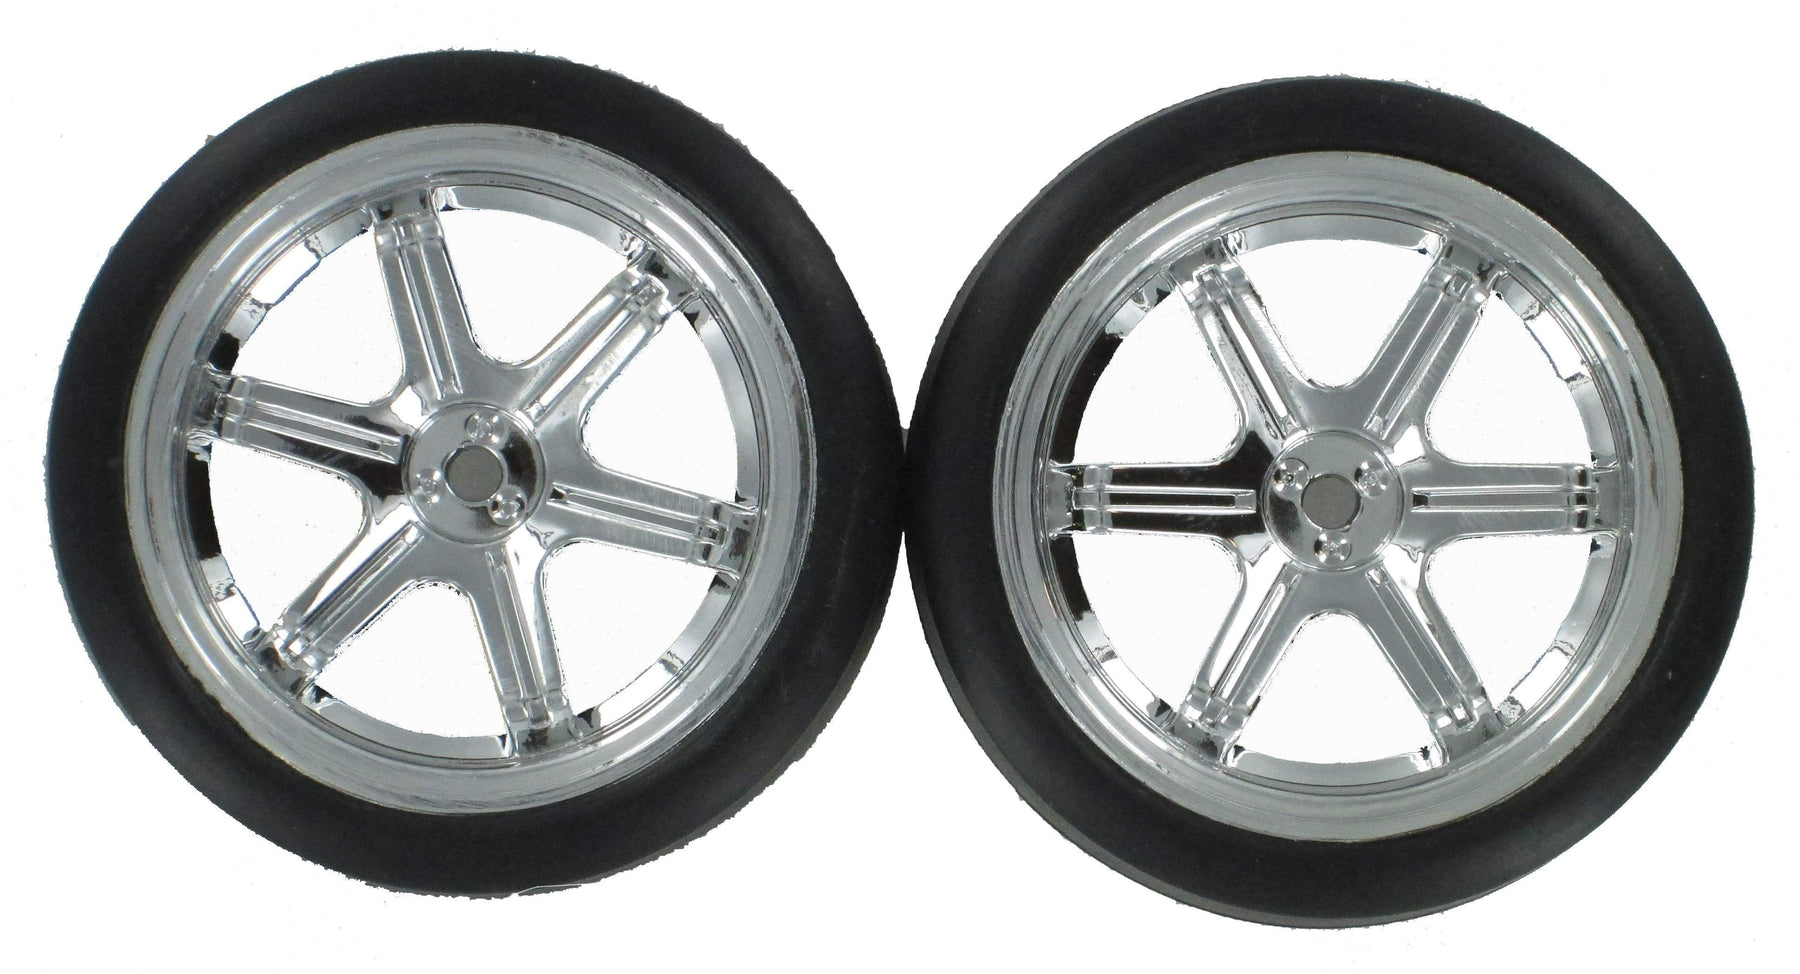 Redcat Racing Wheel Complete REDCAT RACING BS205-011 Road Wheels - Chrome